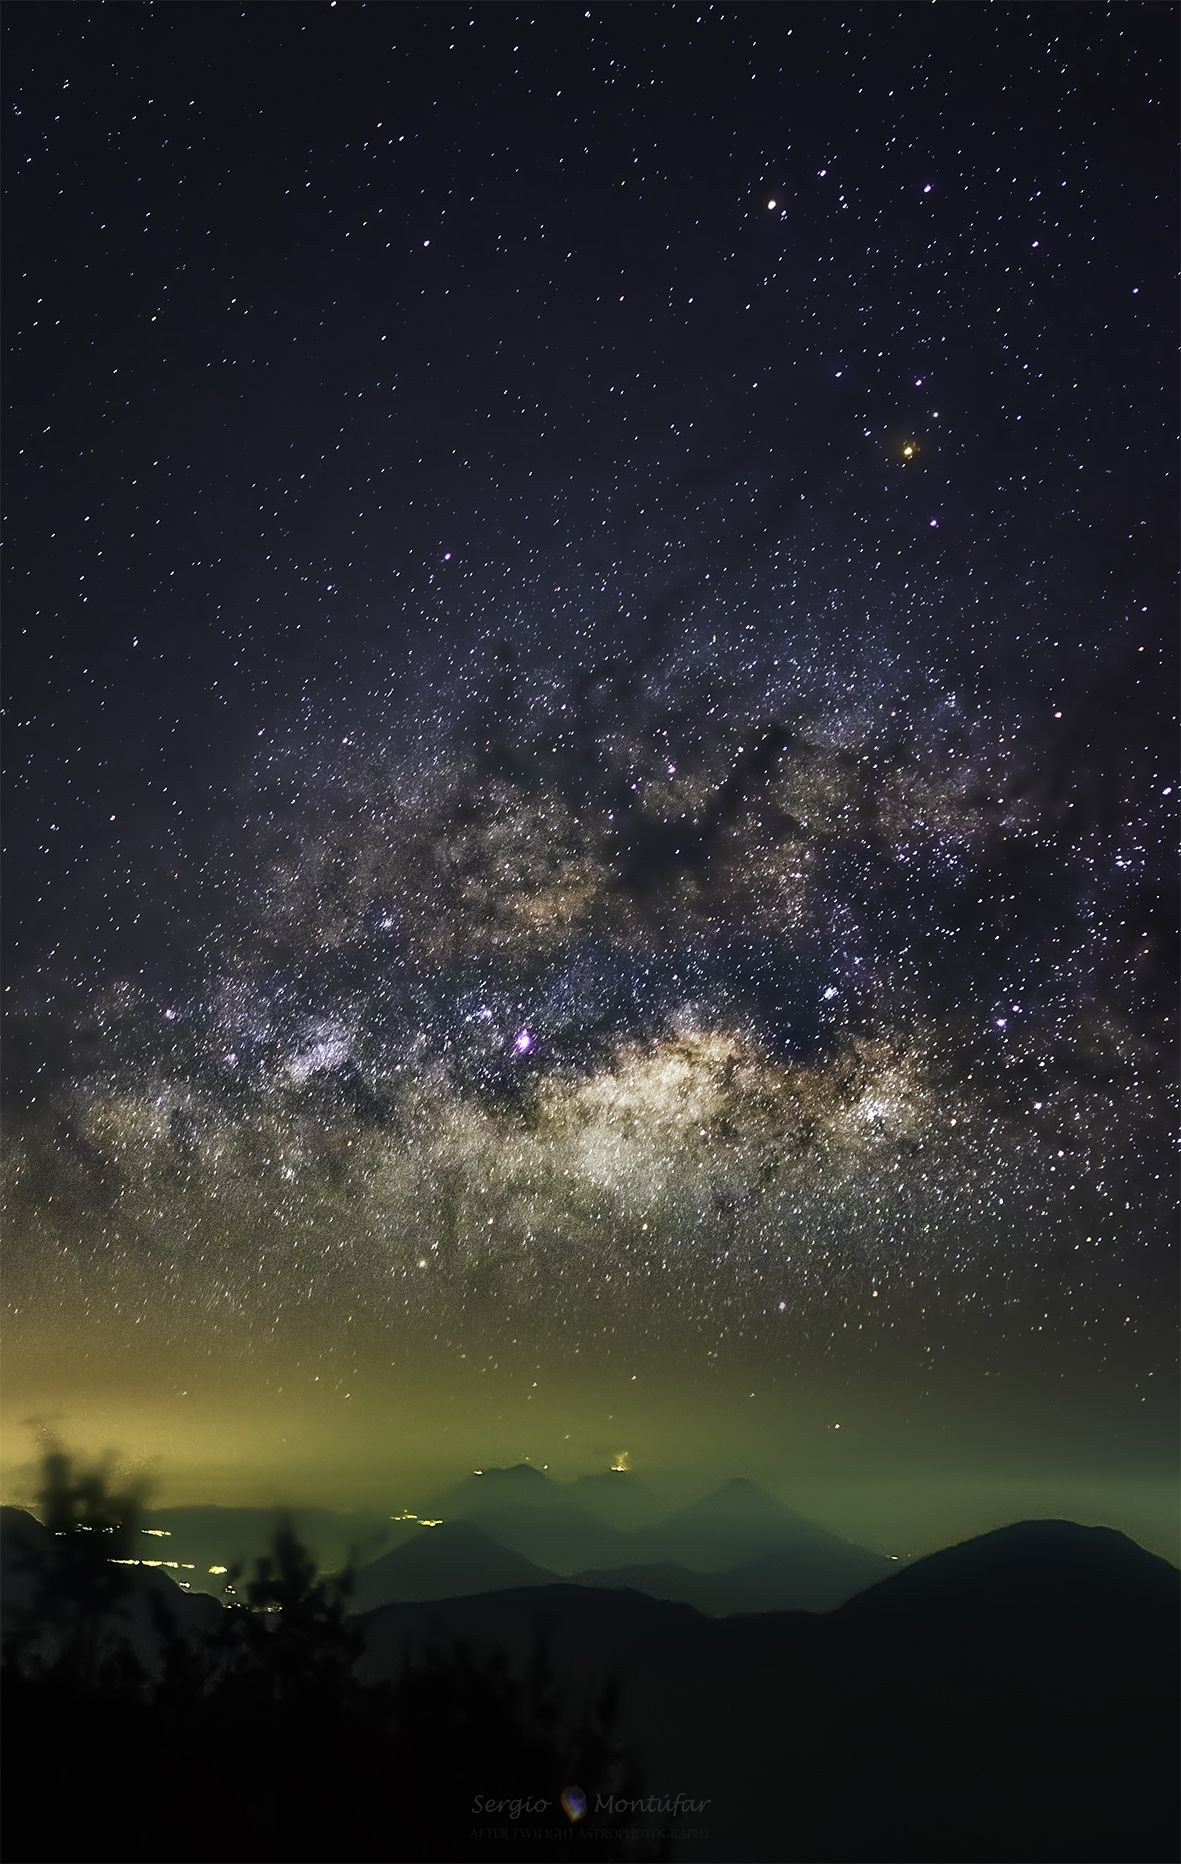 Milky Way above an active volcano